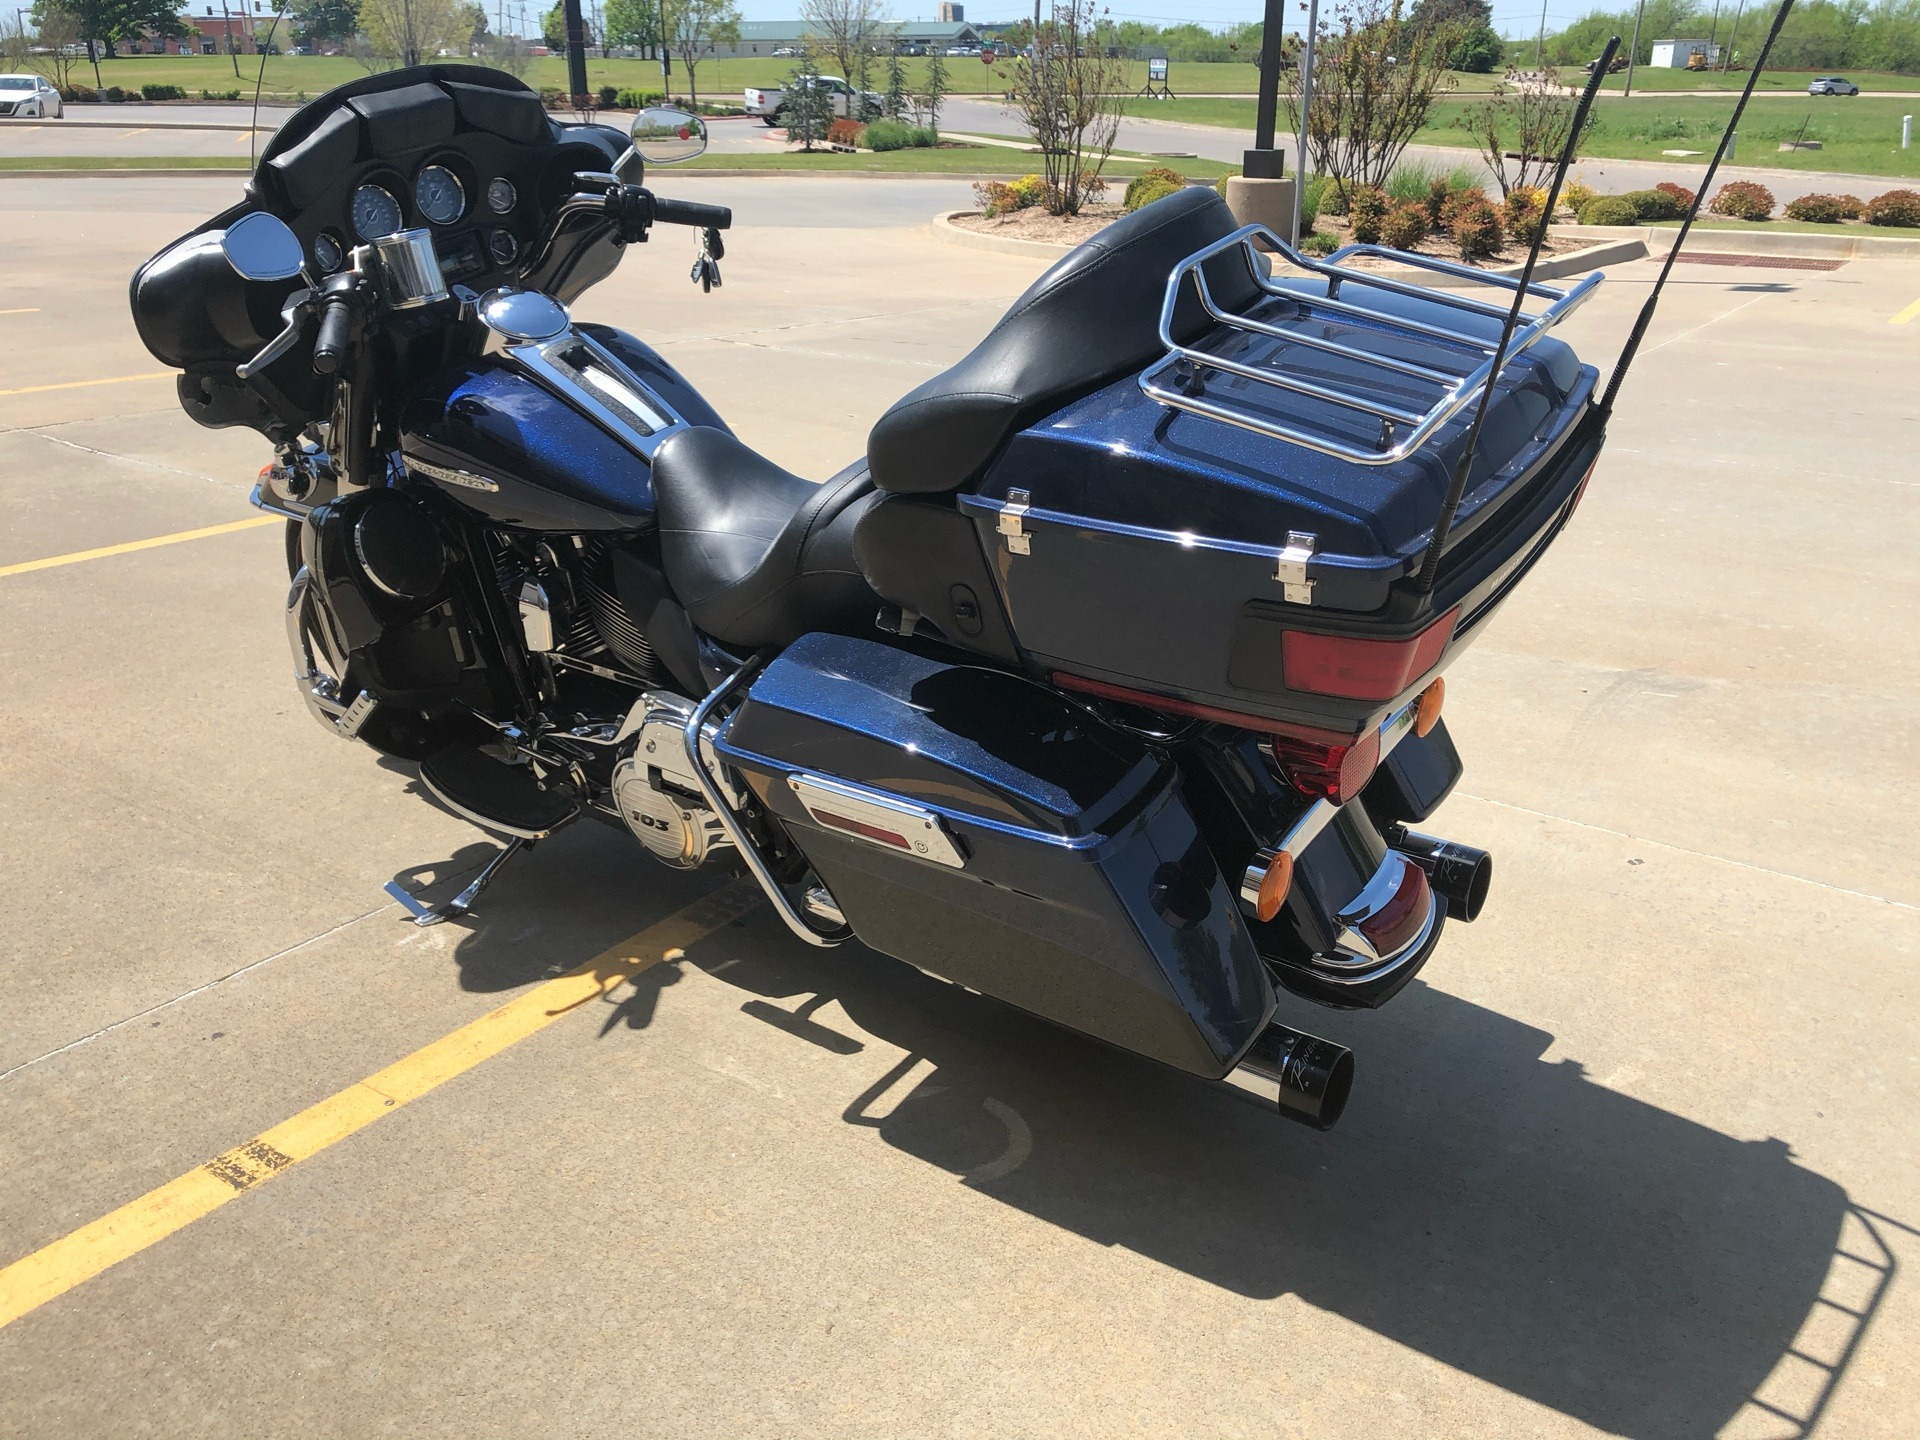 2012 Harley-Davidson Electra Glide® Ultra Limited in Norman, Oklahoma - Photo 6